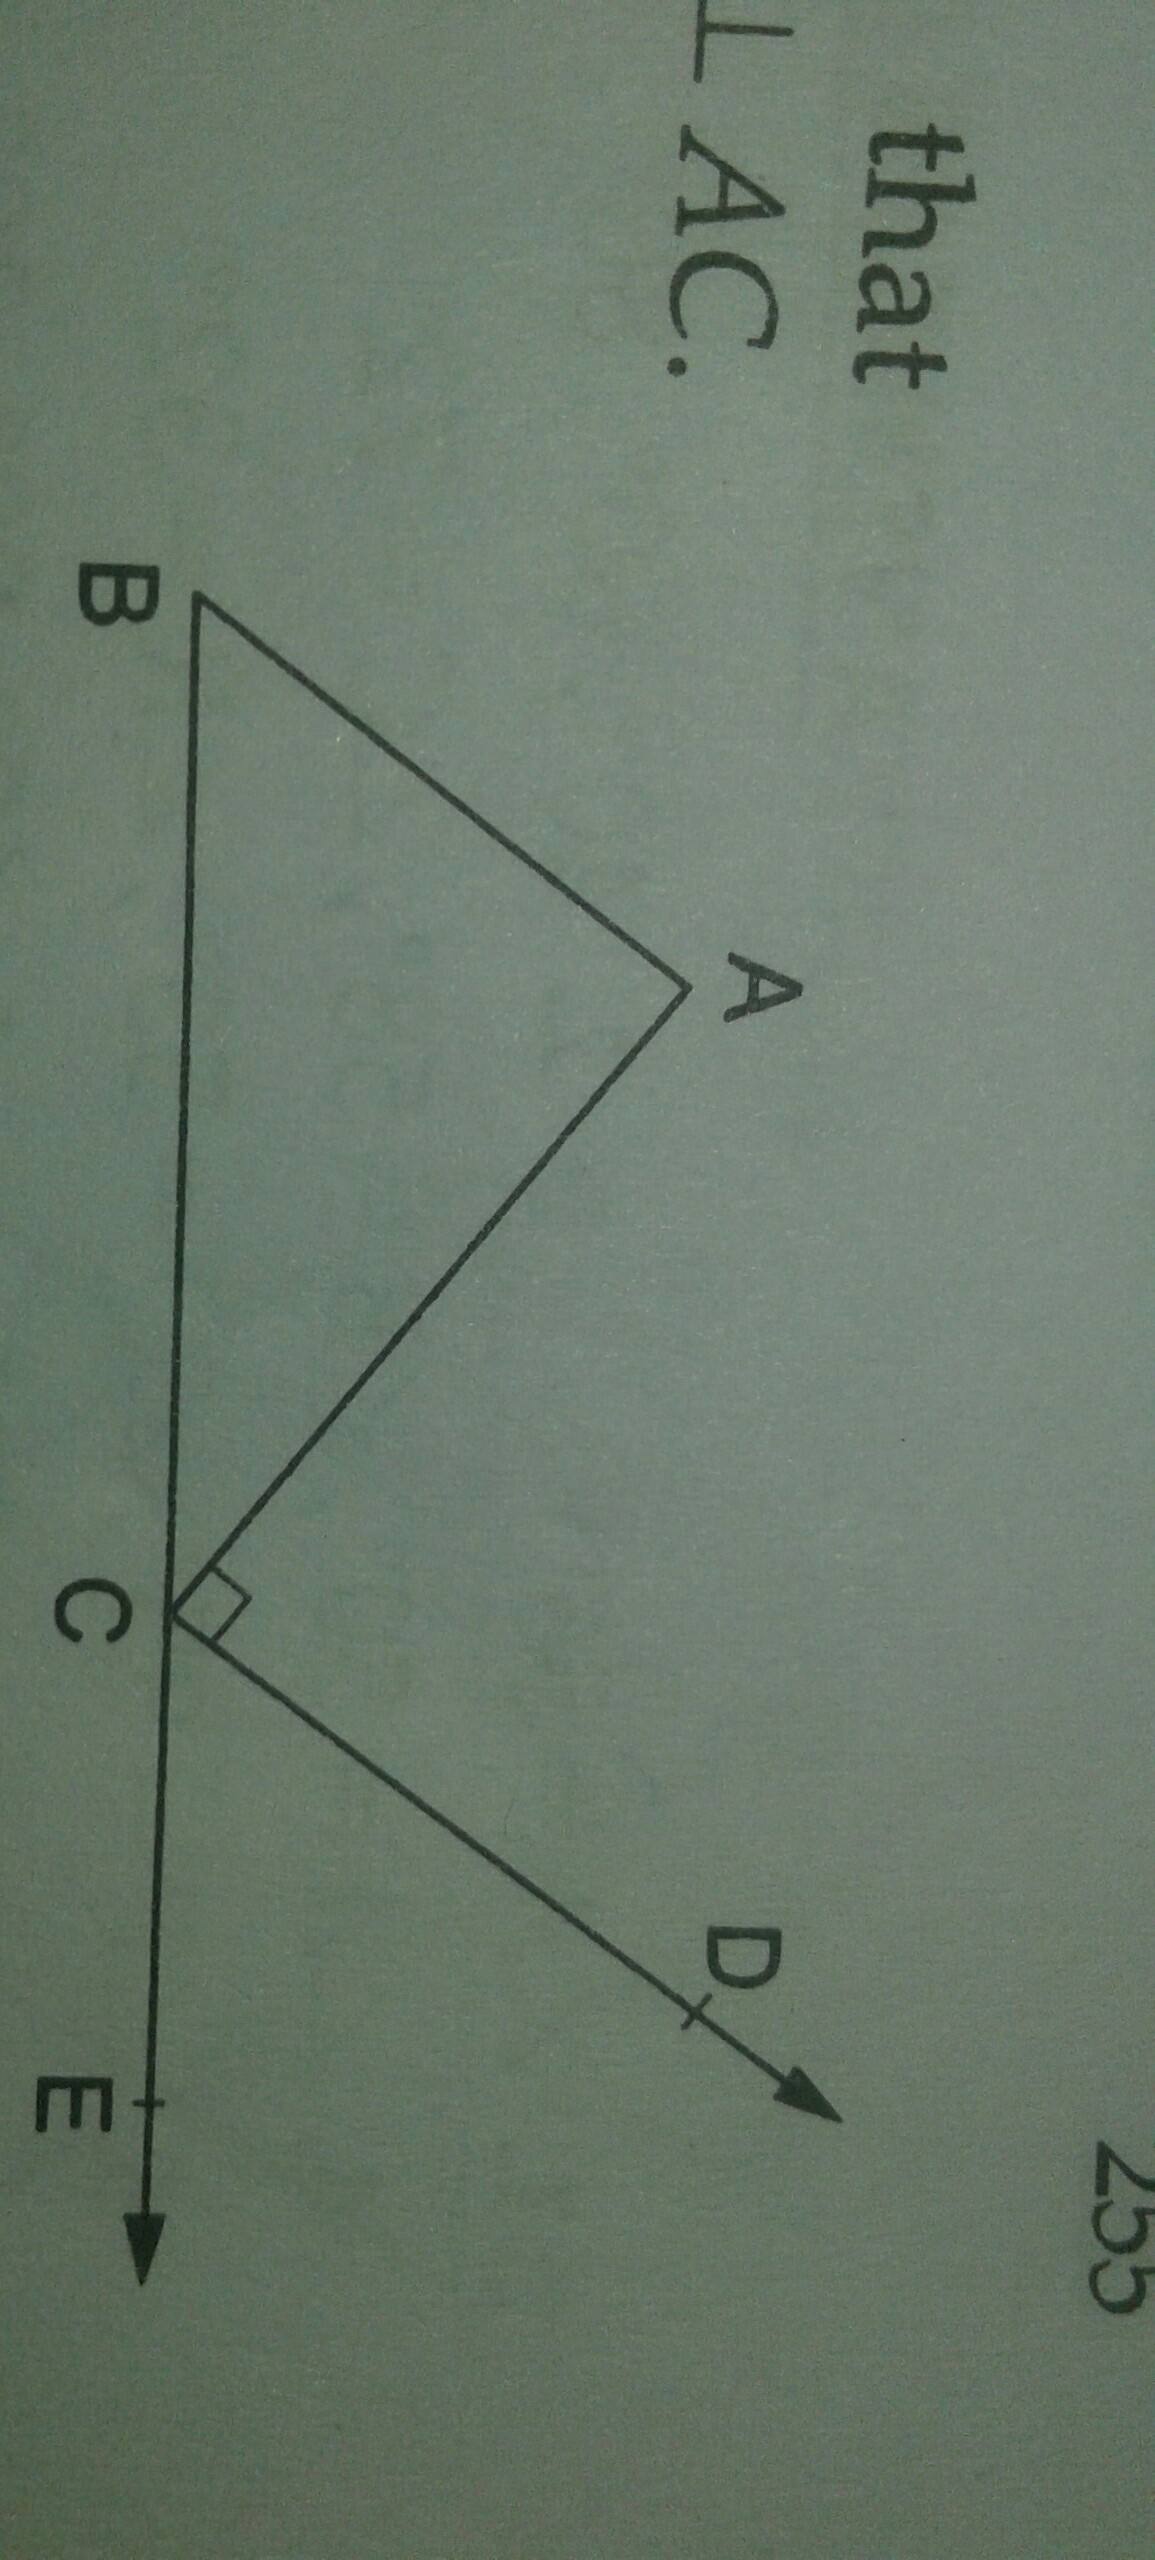 In A Triangle ABC It Is Given That Angle A Ratio Angle B Ratio Angle C Is  Equals To 3 Ratio 2 Ratio 1 - Brainly.in